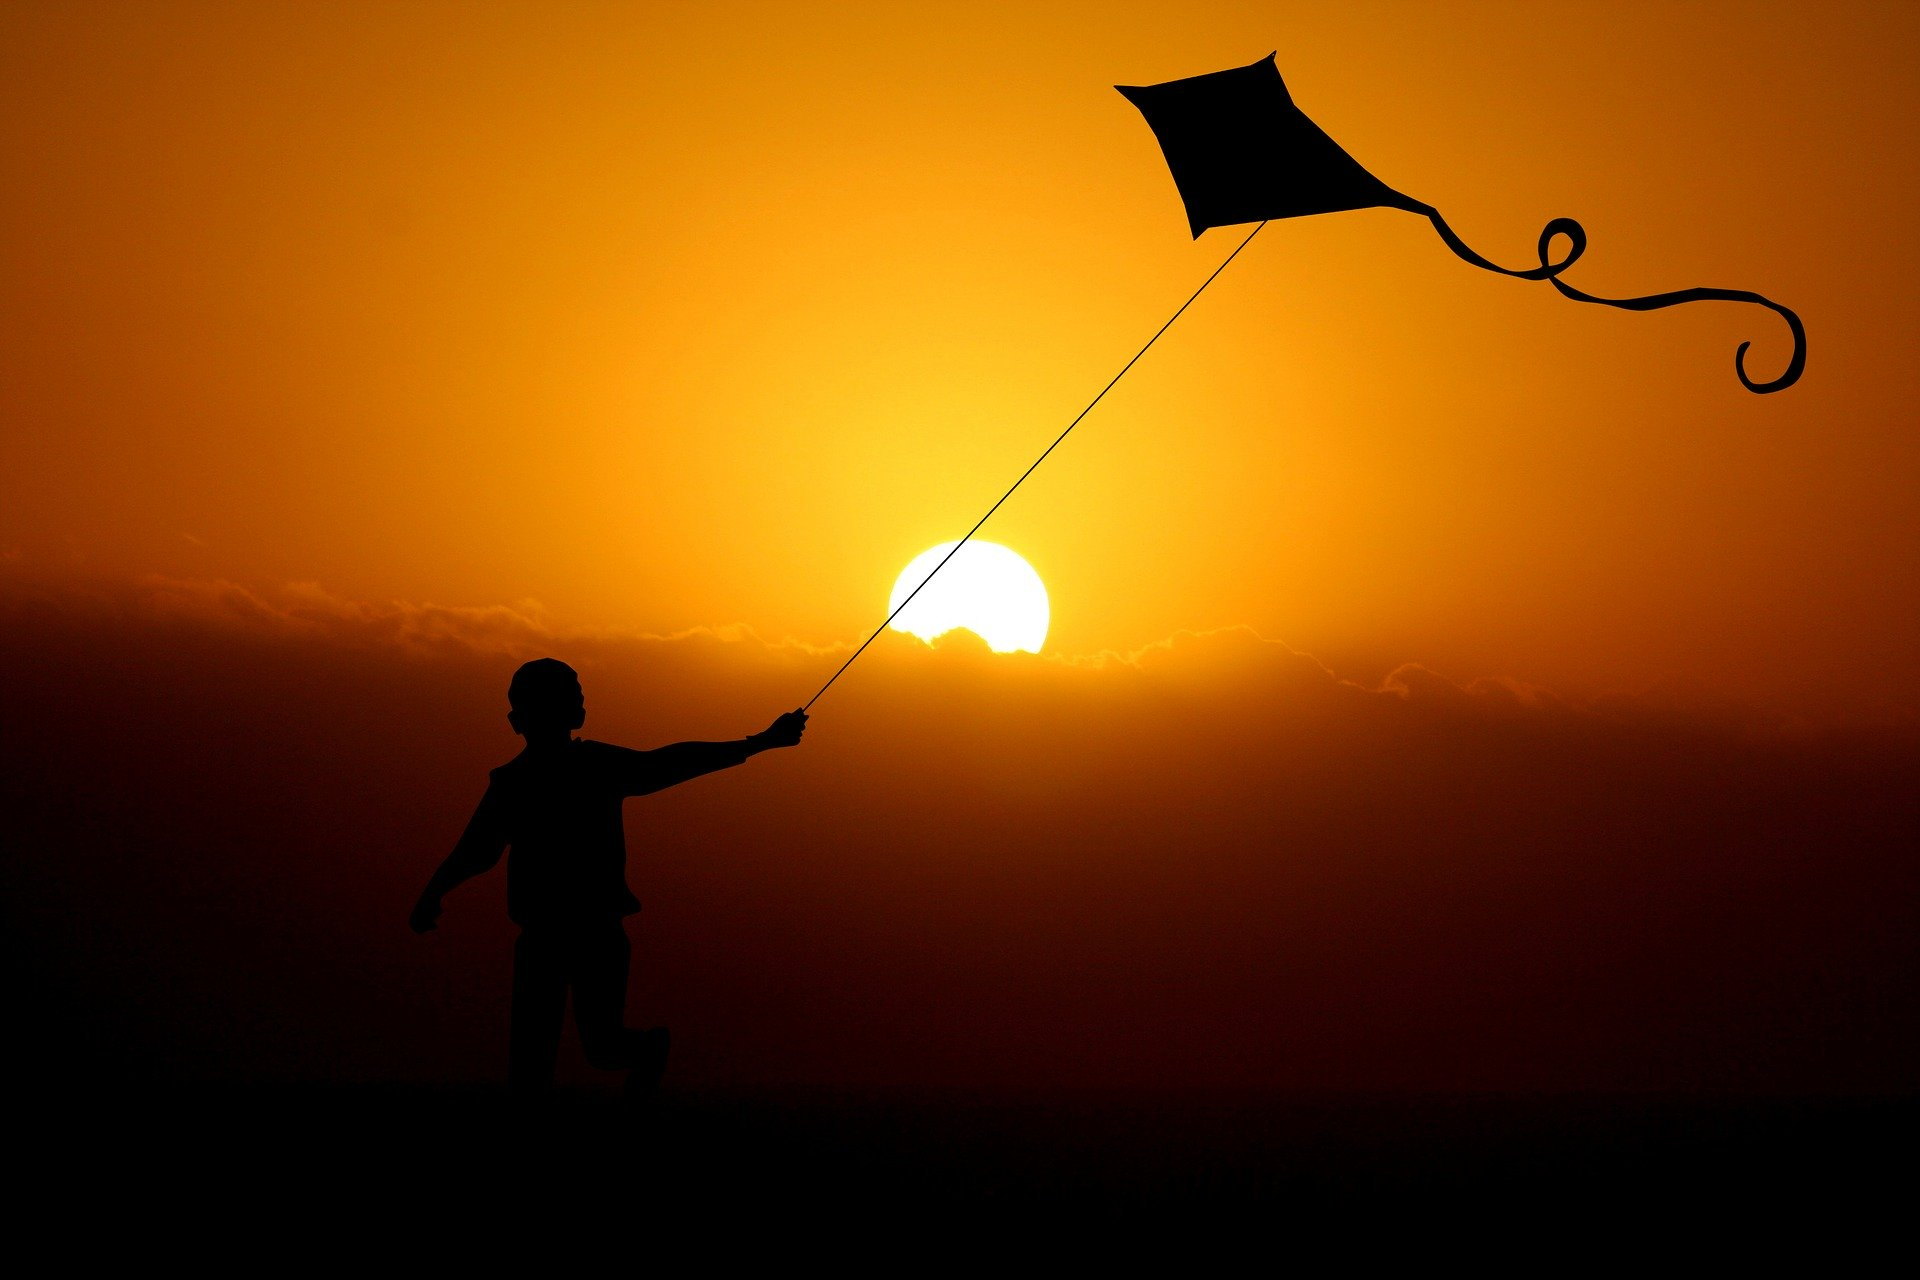 Makar Sankranti 2020 Images, Wishes and More